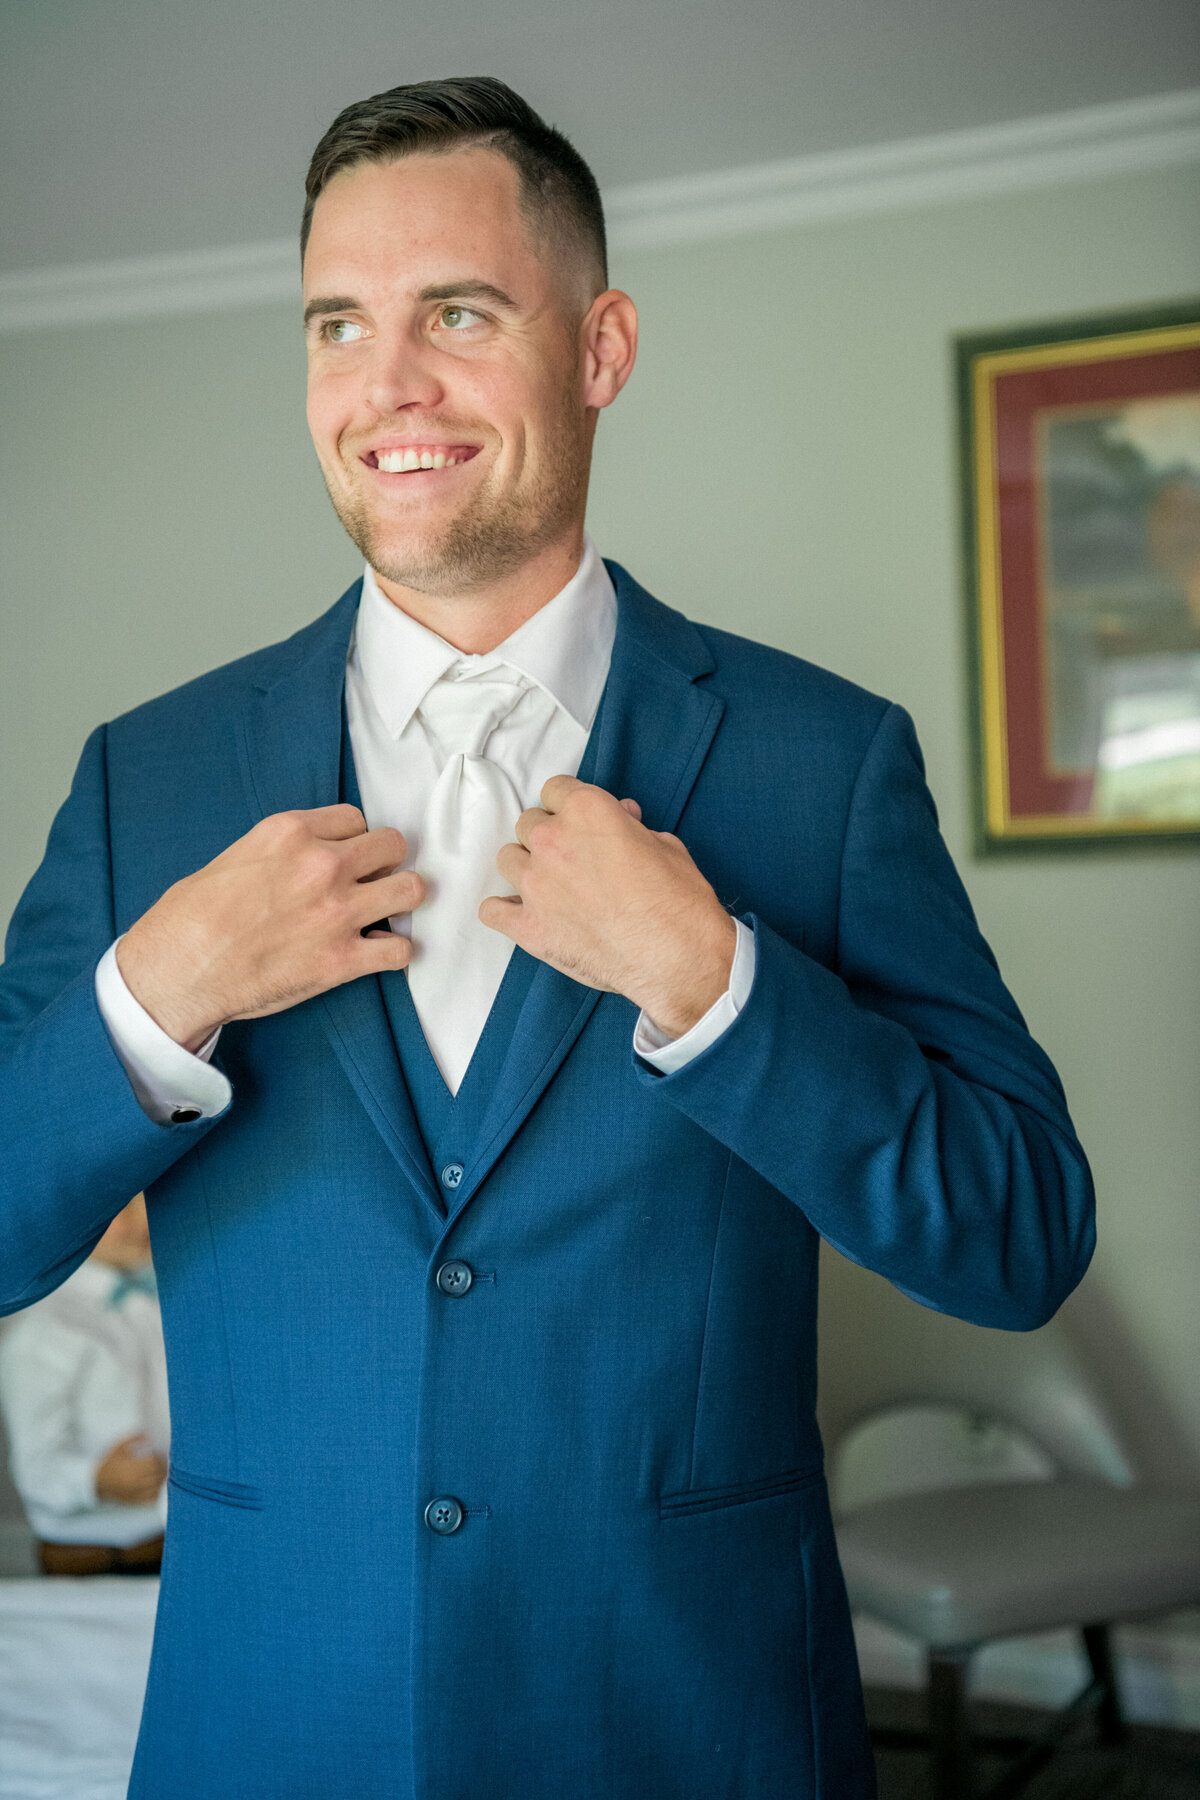 Groom dressed